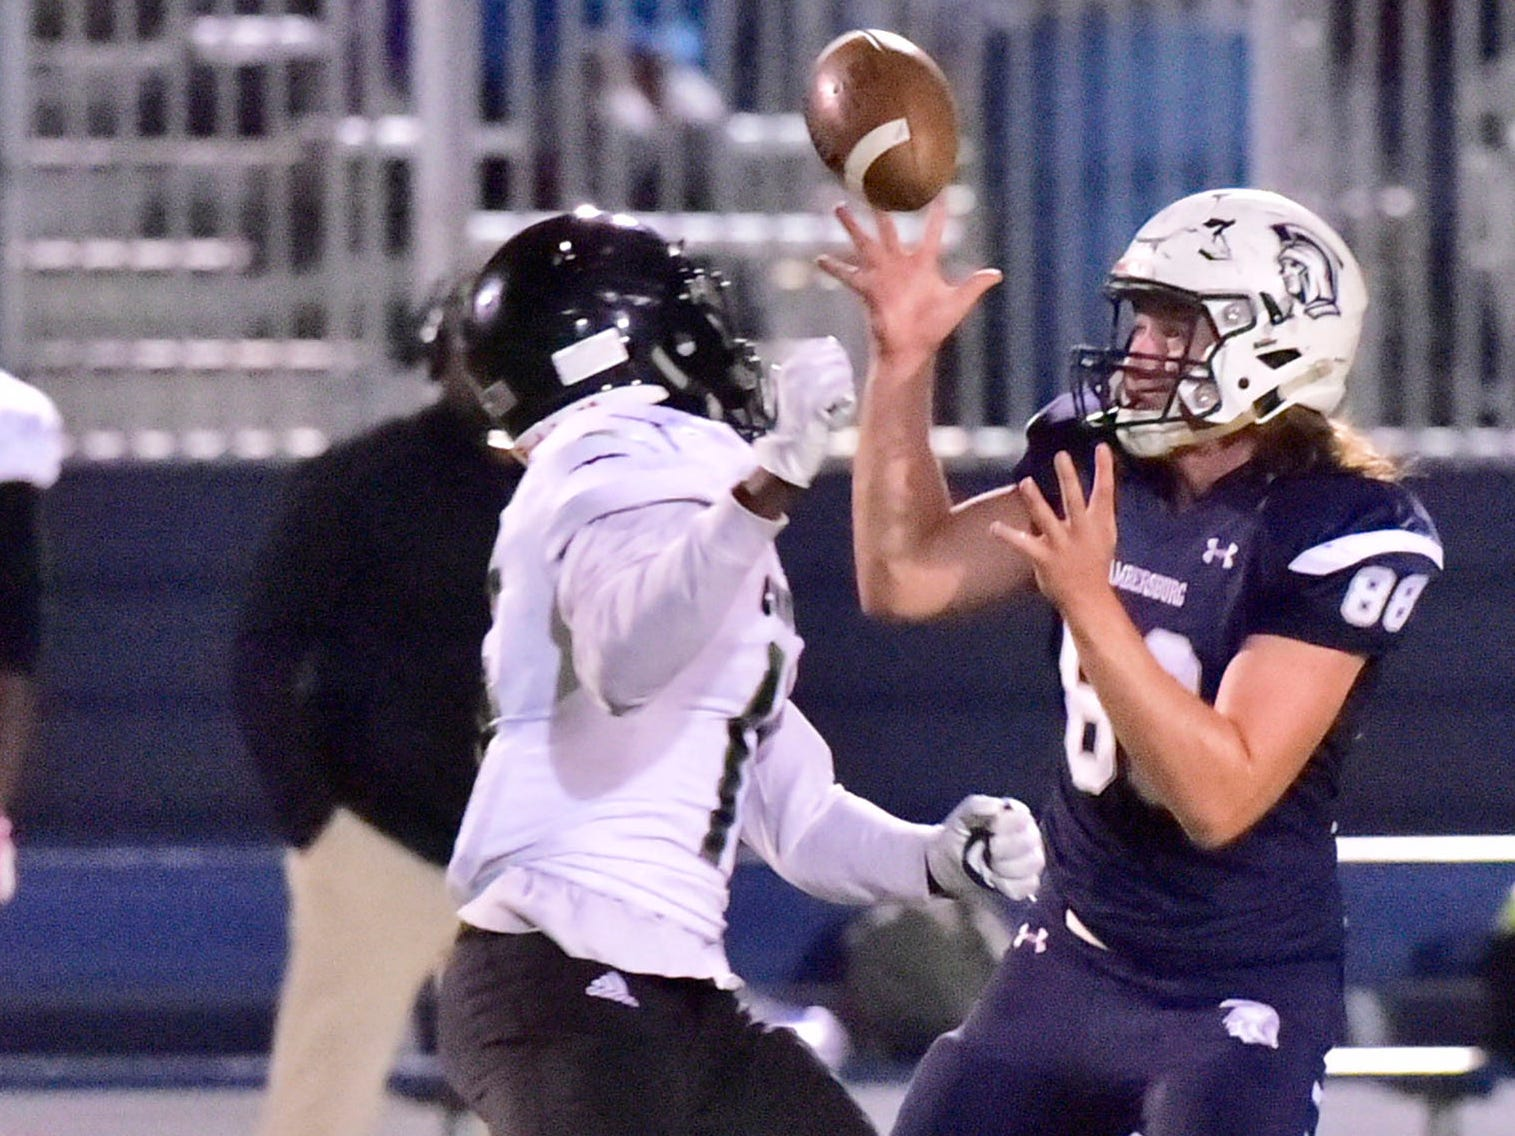 Chambersburg's Garner Funk (88) reels in a pass for the Trojans. Chambersburg dropped a 28-13 game against Harrisburg in PIAA football on Friday, Oct. 12, 2018.